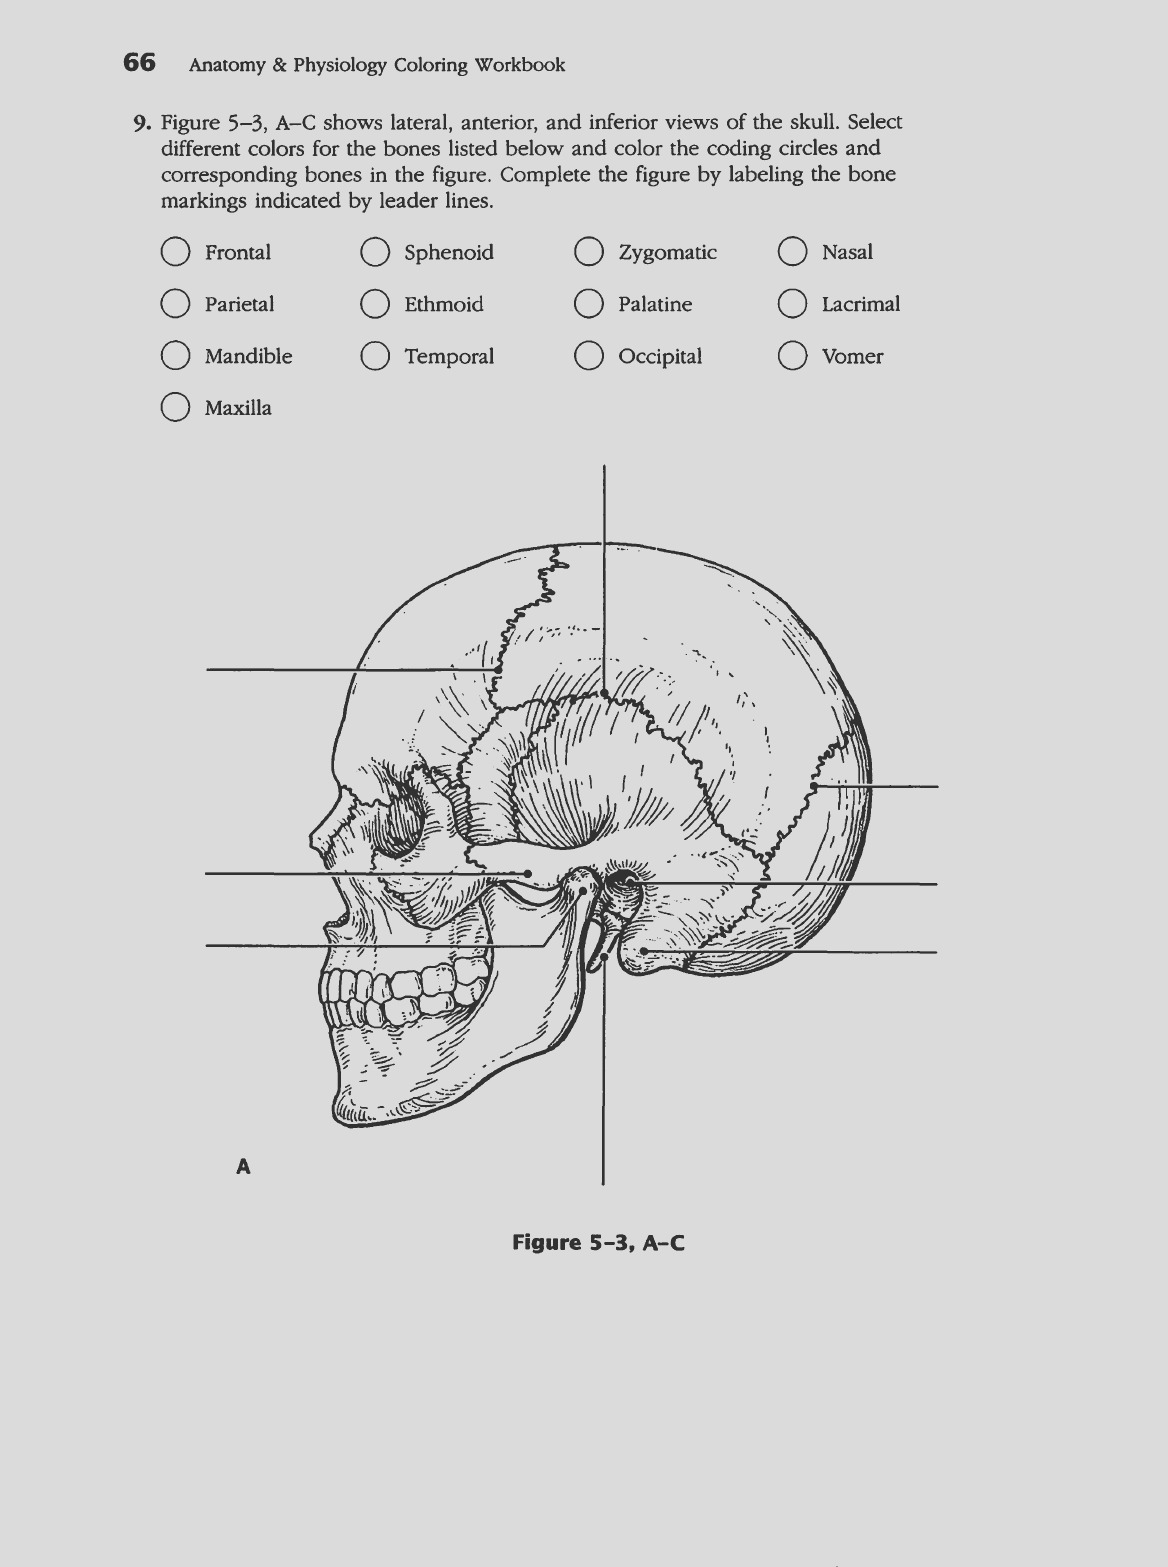 anatomy and physiology coloring workbook answers chapter 5 appendicular skeleton